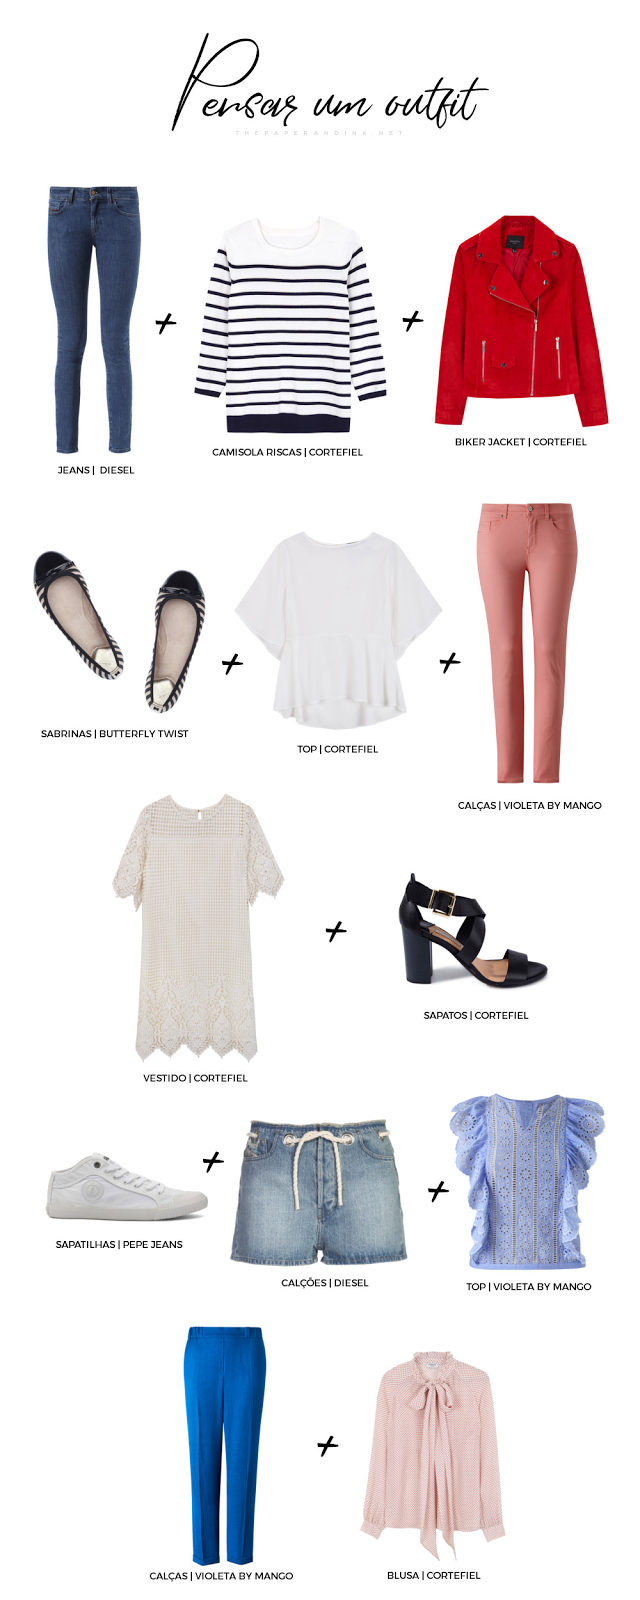 How to think and coordinate your outfit. Outfit formulas that are classic and spot on for fashion lovers.